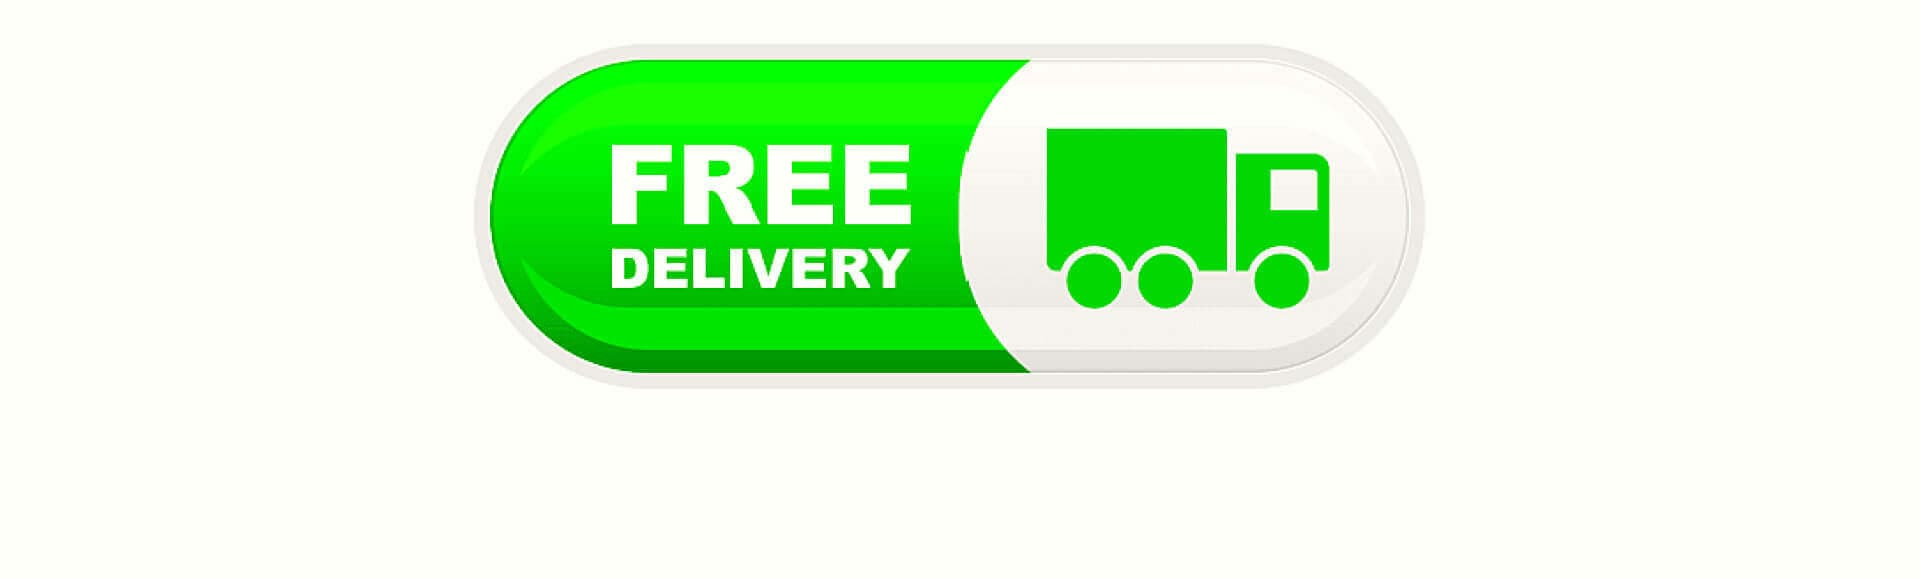 free delivery word